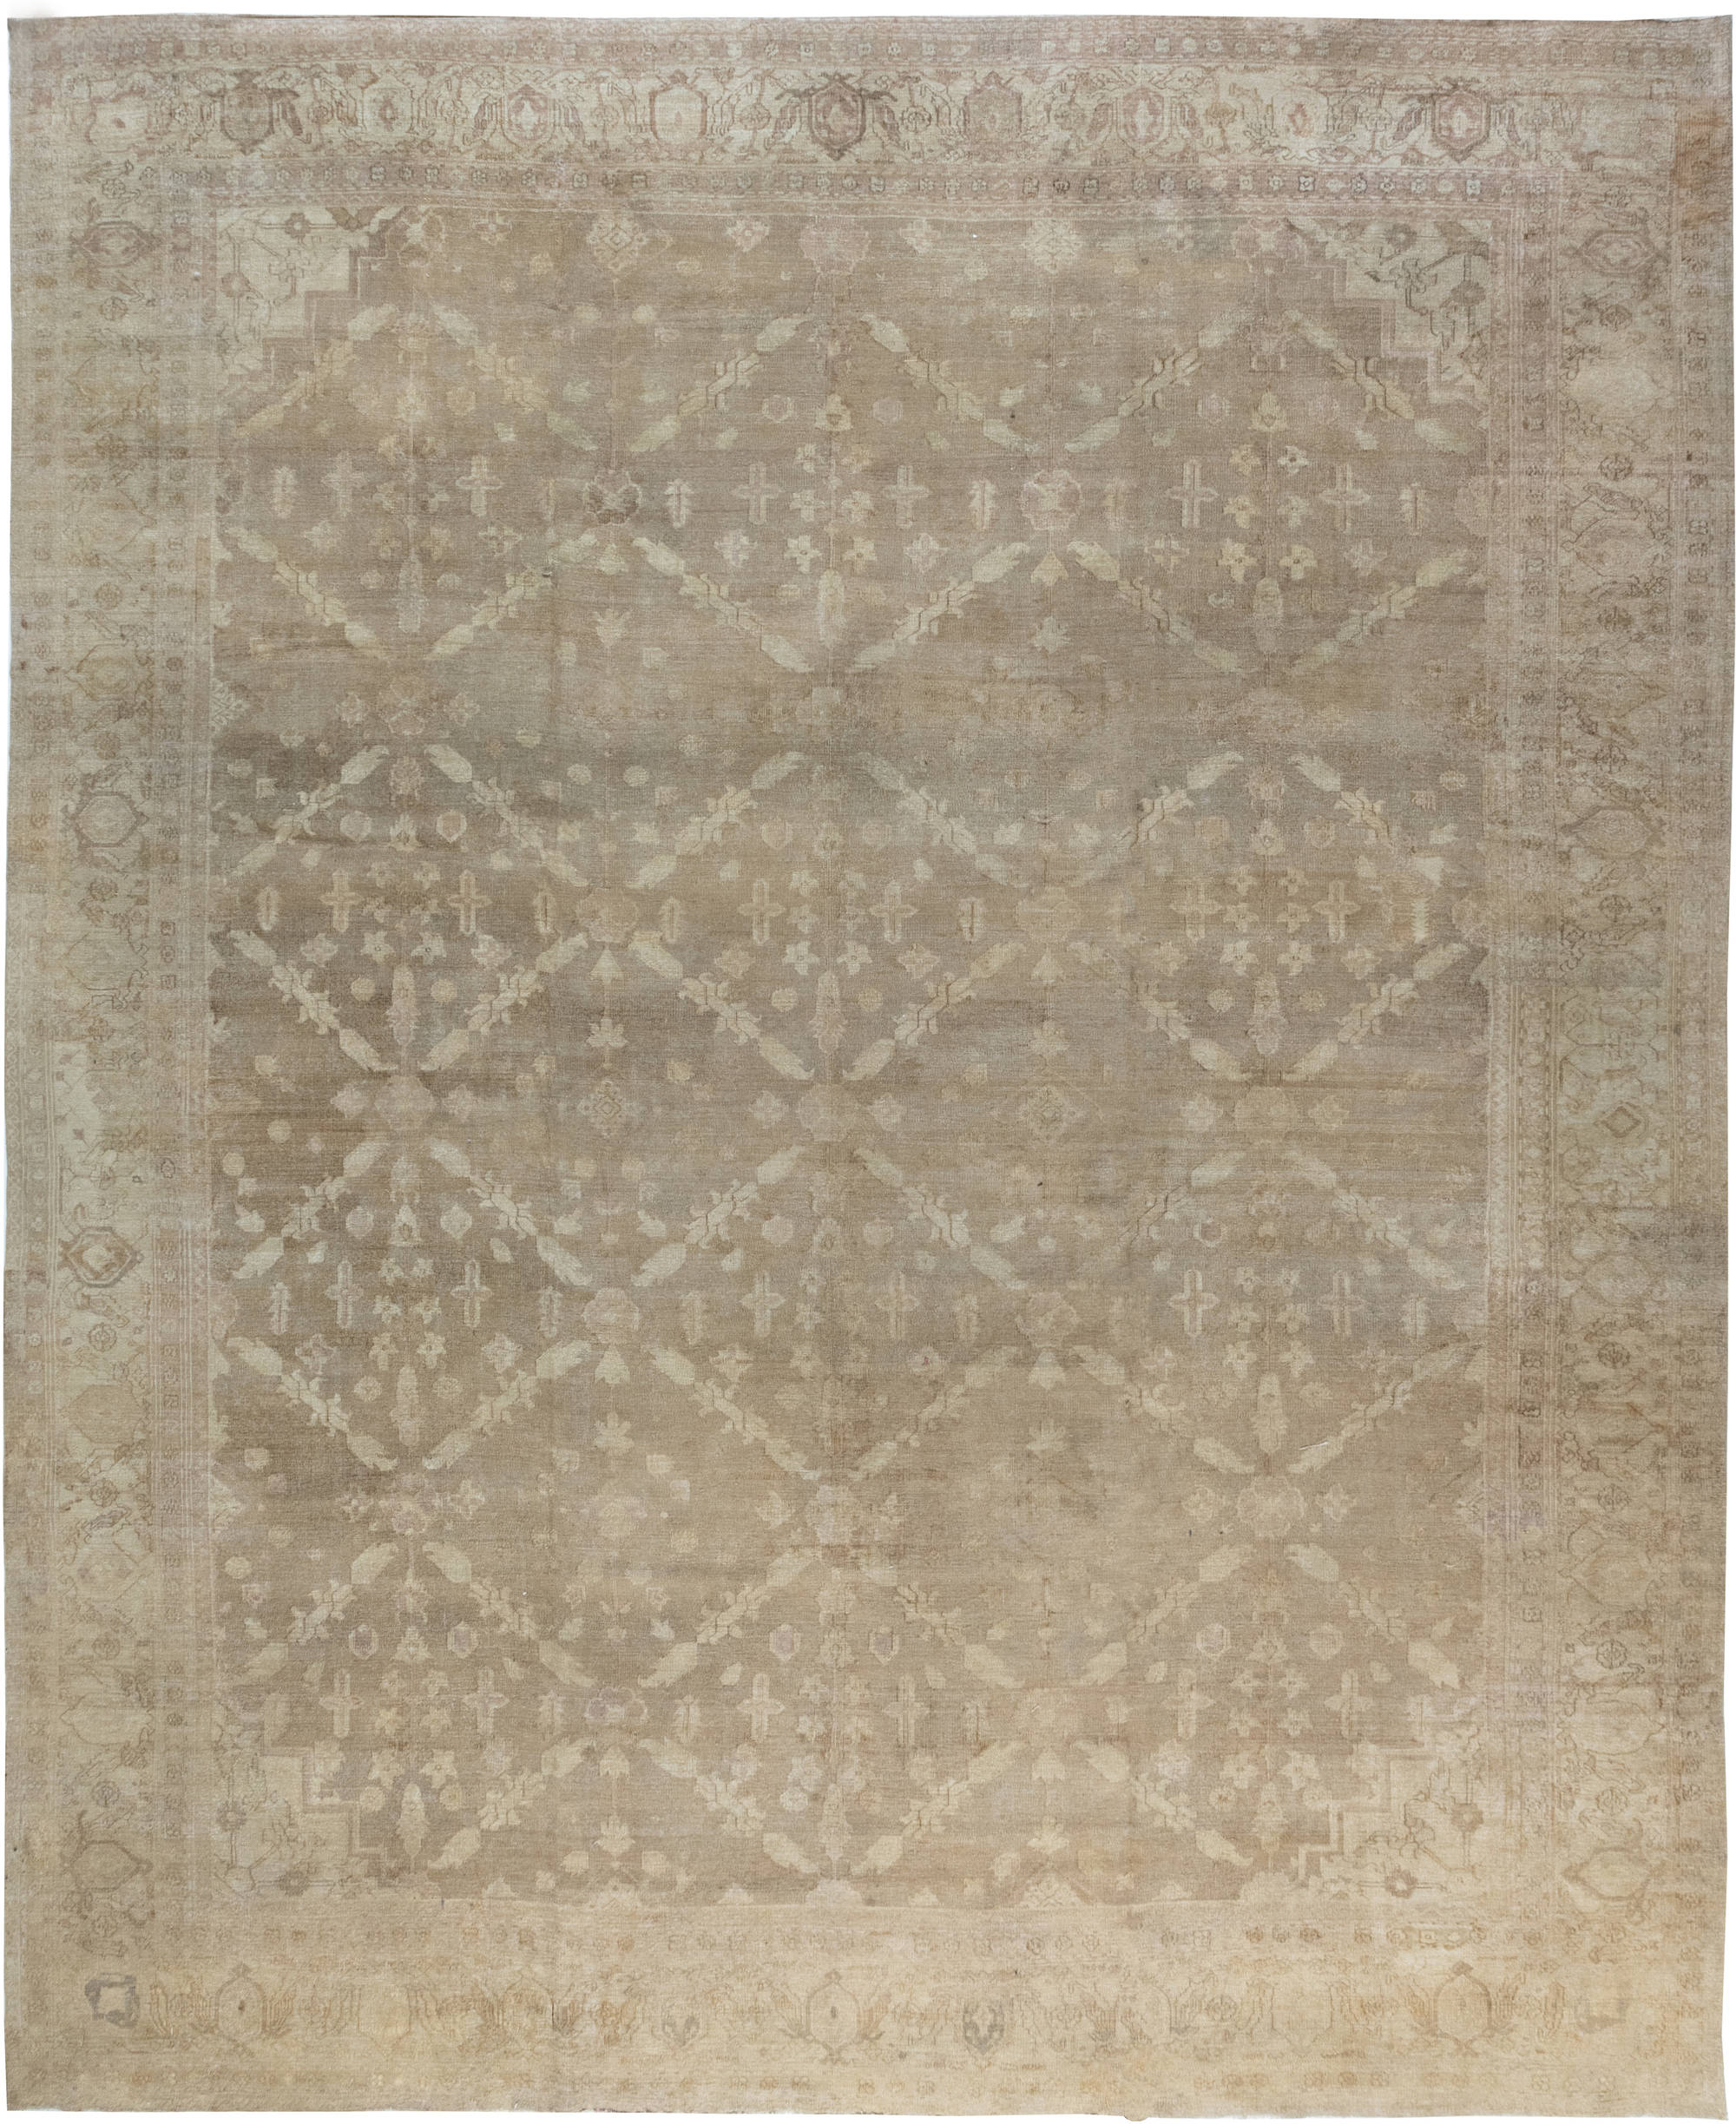 Large Indian Amritsar Carpet BB6364